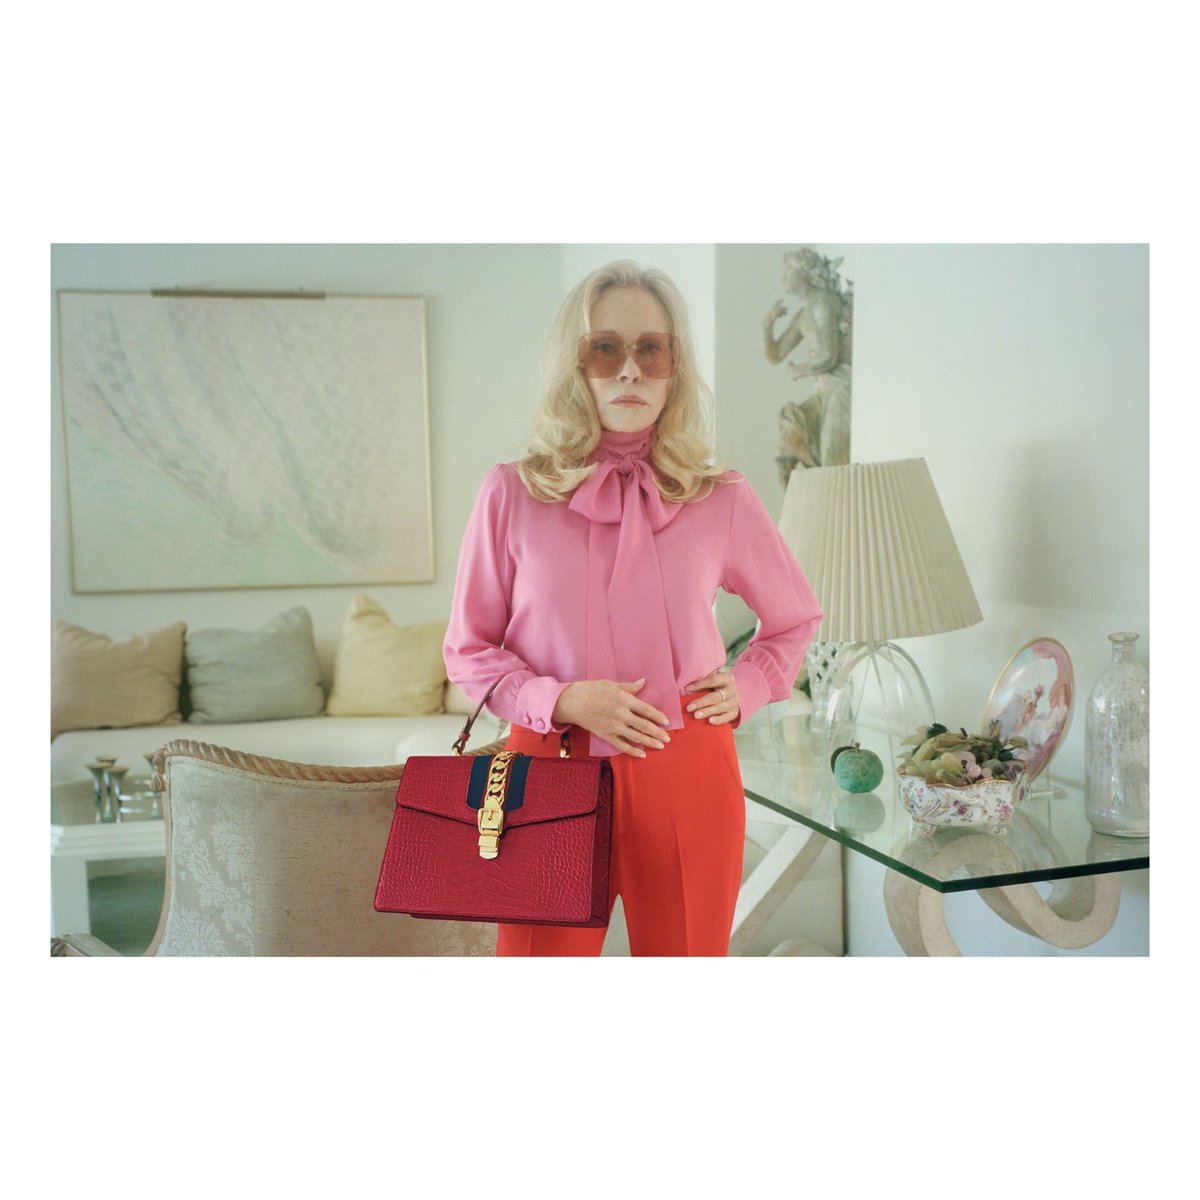 Up close: #FayeDunaway and the #GucciSylvie bag photographed in a campaign by @petracollins.